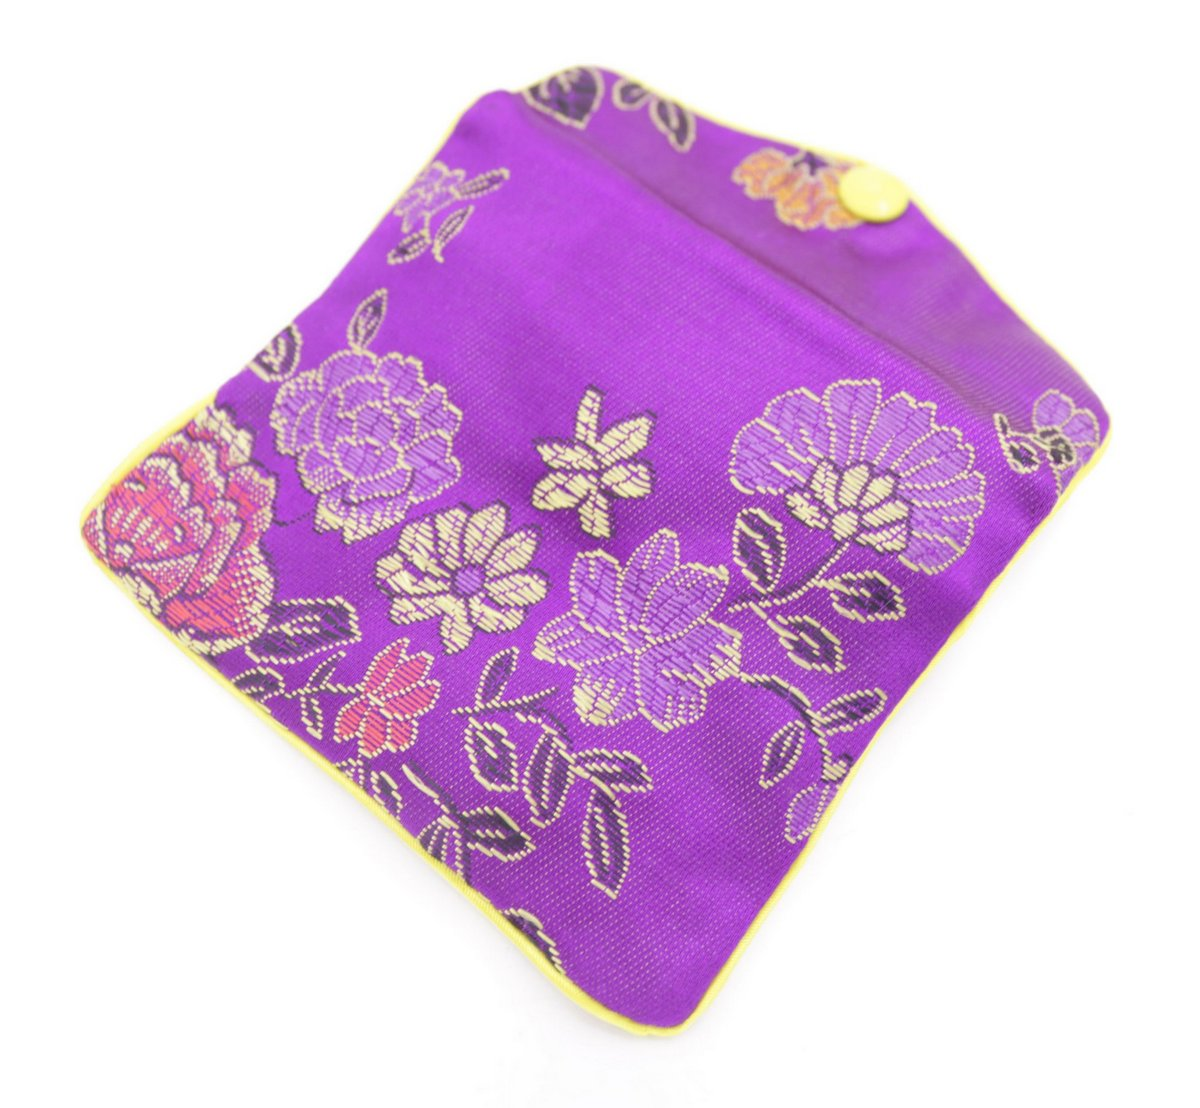 10 pcs purple flower baldachin cloth gift jewelry bags pouches 80mmx100mm